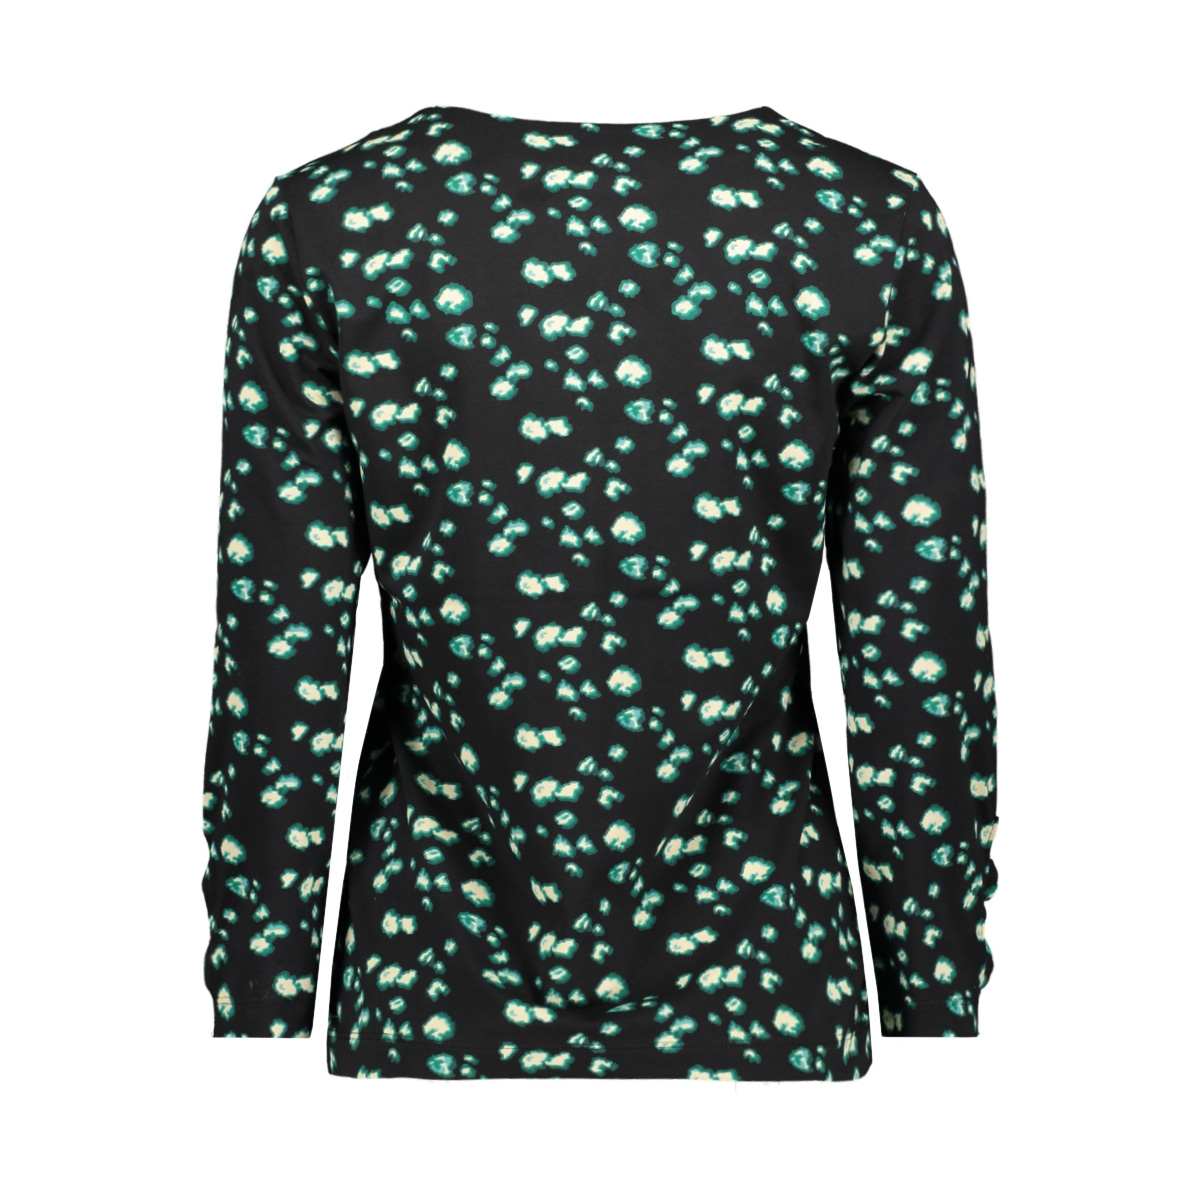 top with bows on the sleeves 21101739 sandwich t-shirt 80041